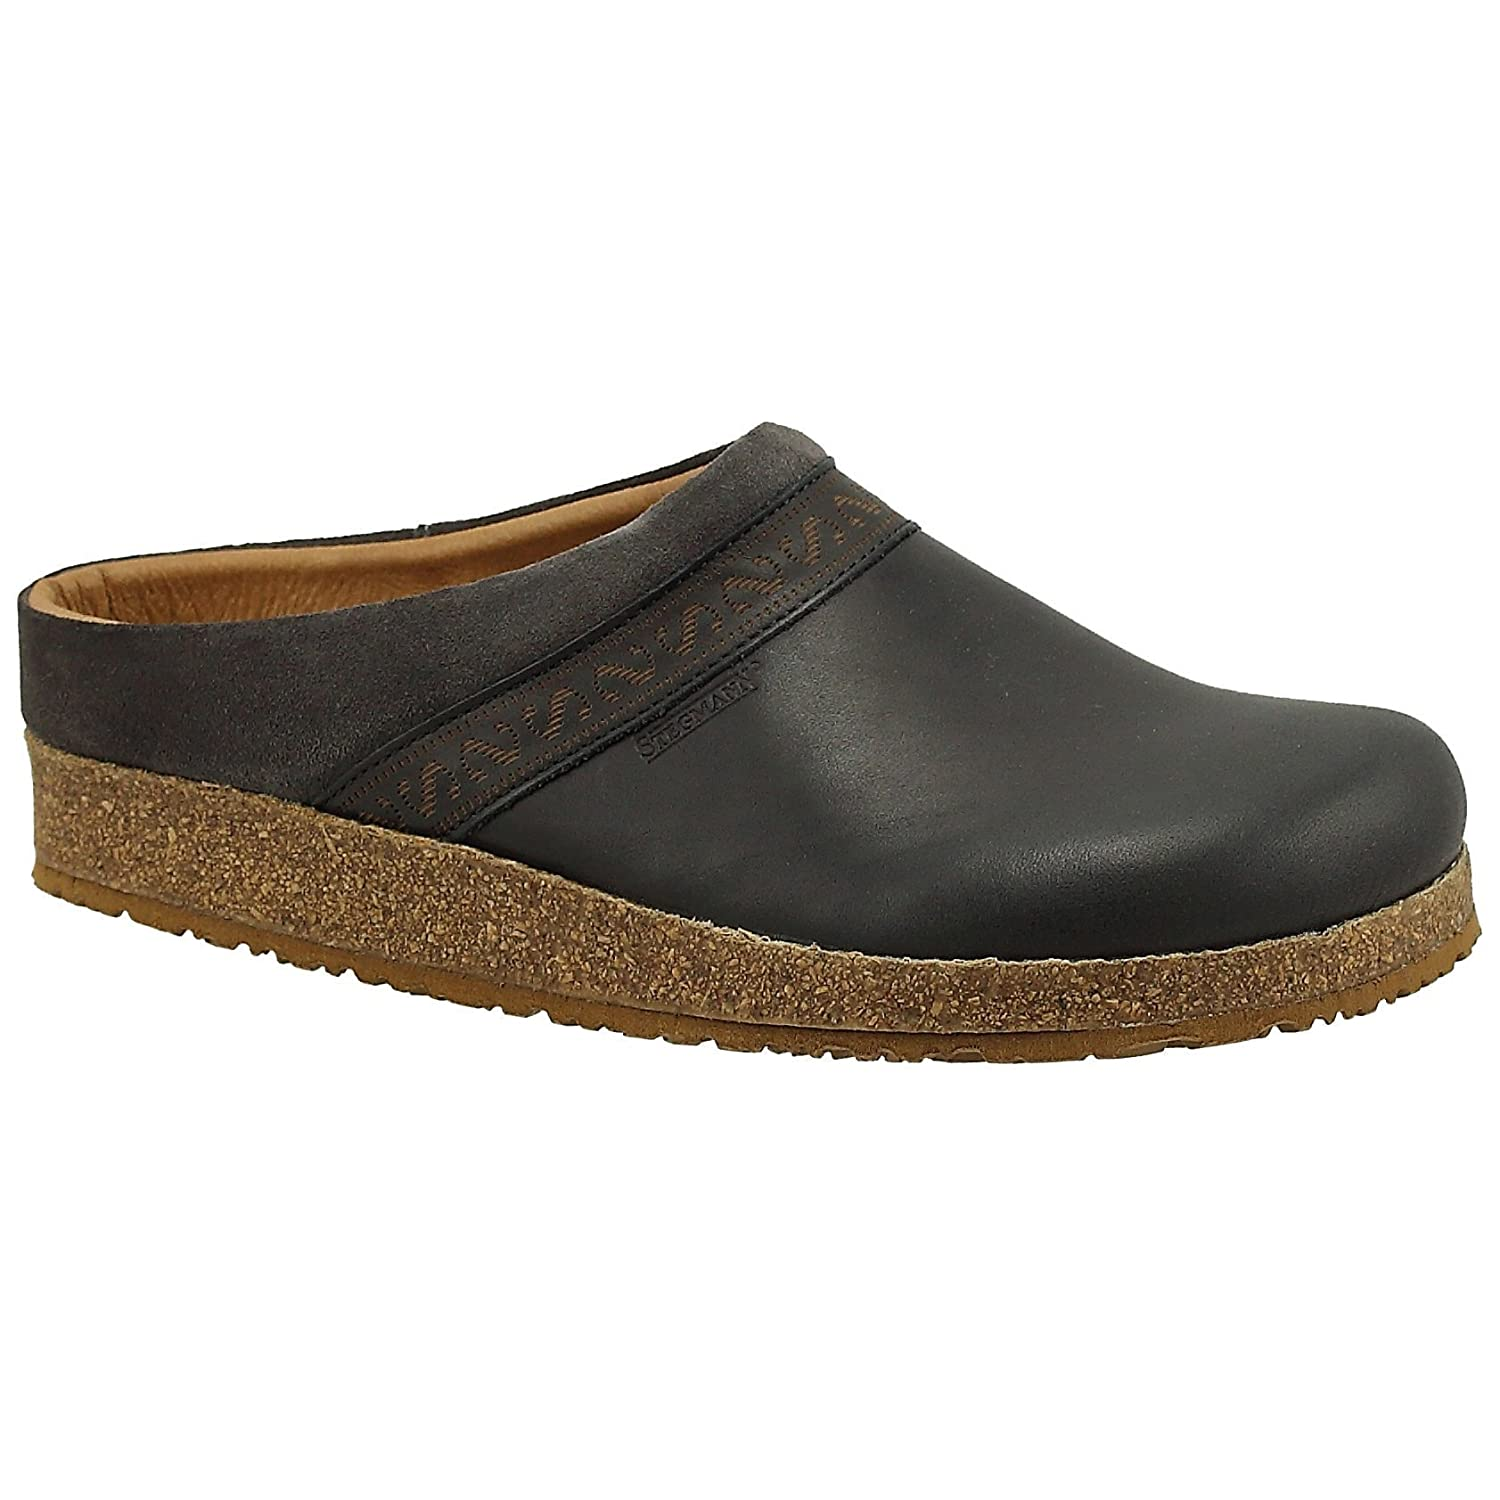 Charcoal Stegmann Women's Leather Linz Clog with Cork Sole